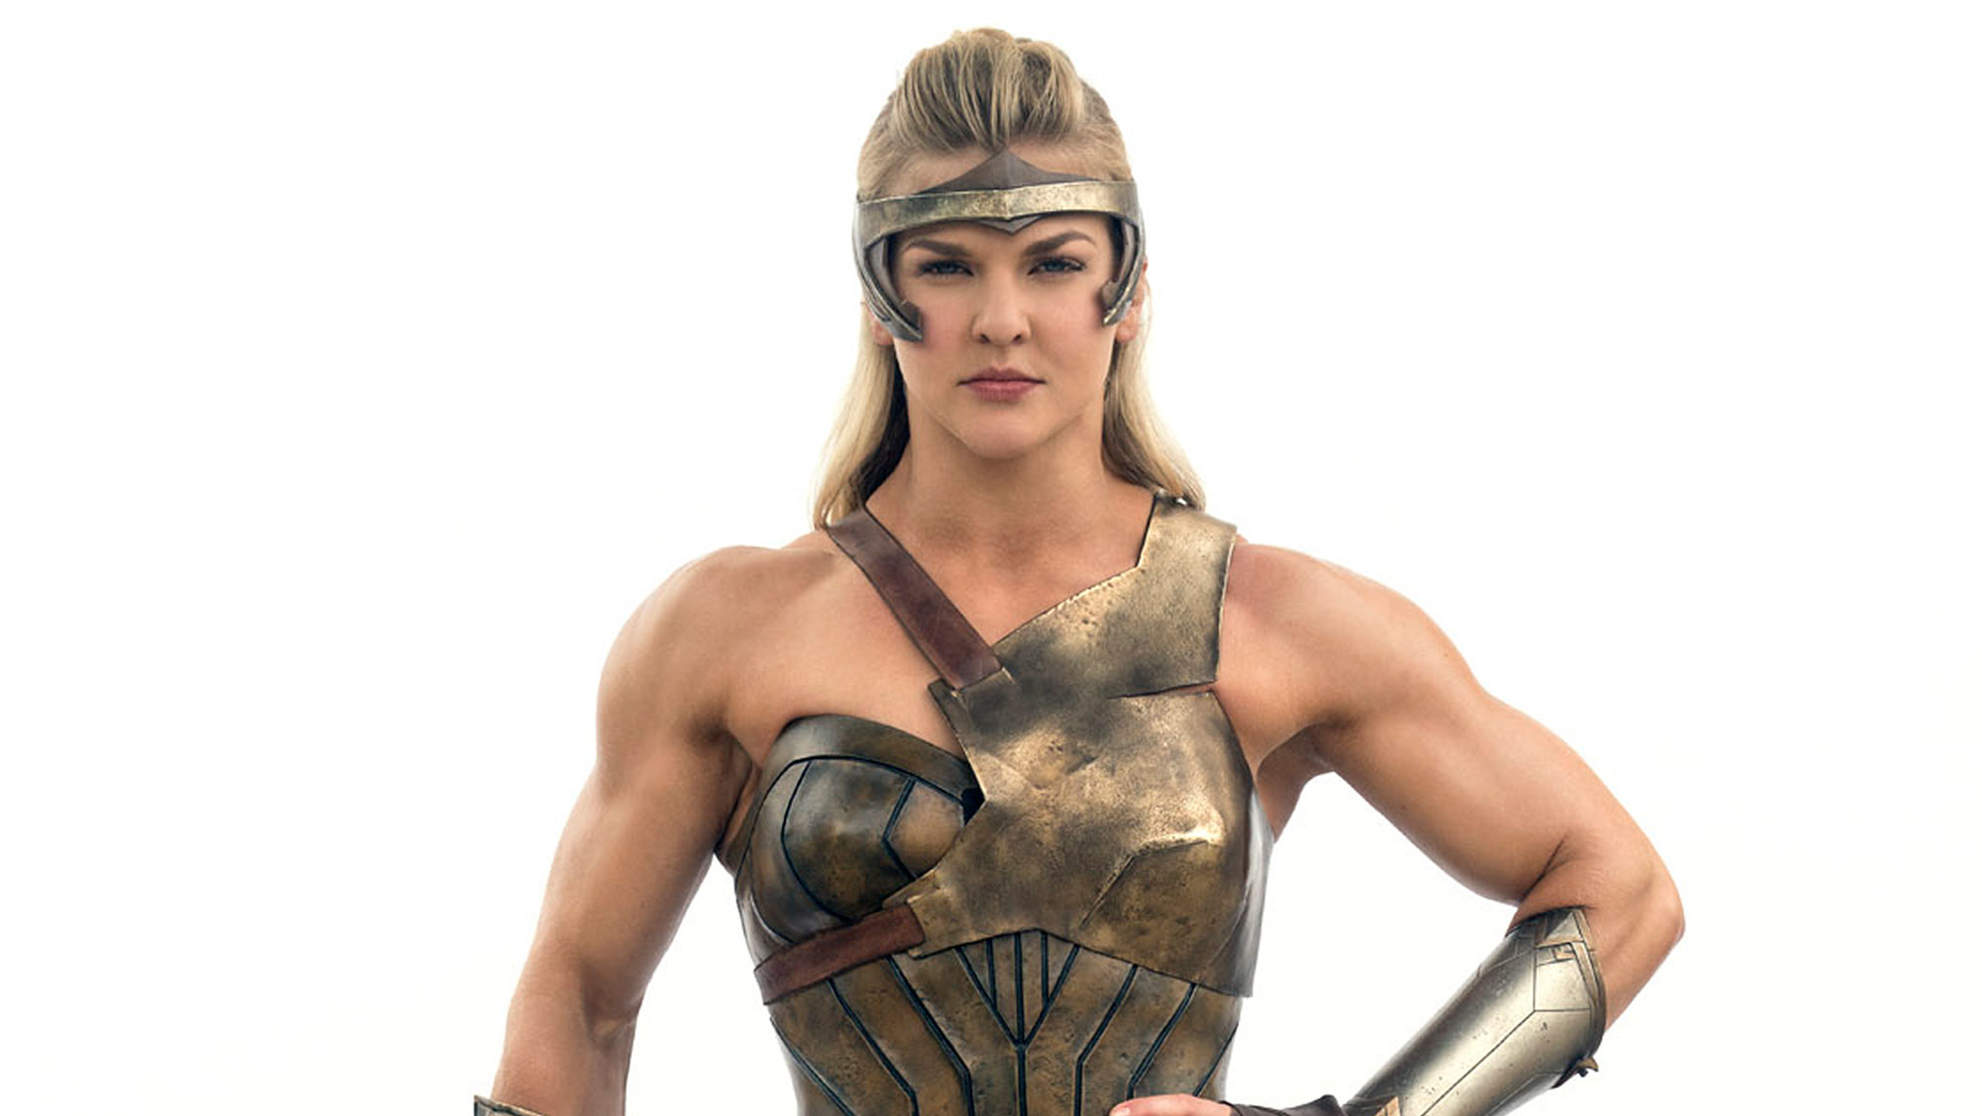 Wonder Woman Amazon Warrior and CrossFit Athlete Brooke Ence Wants to Prove that 'Strong Is Beautiful'